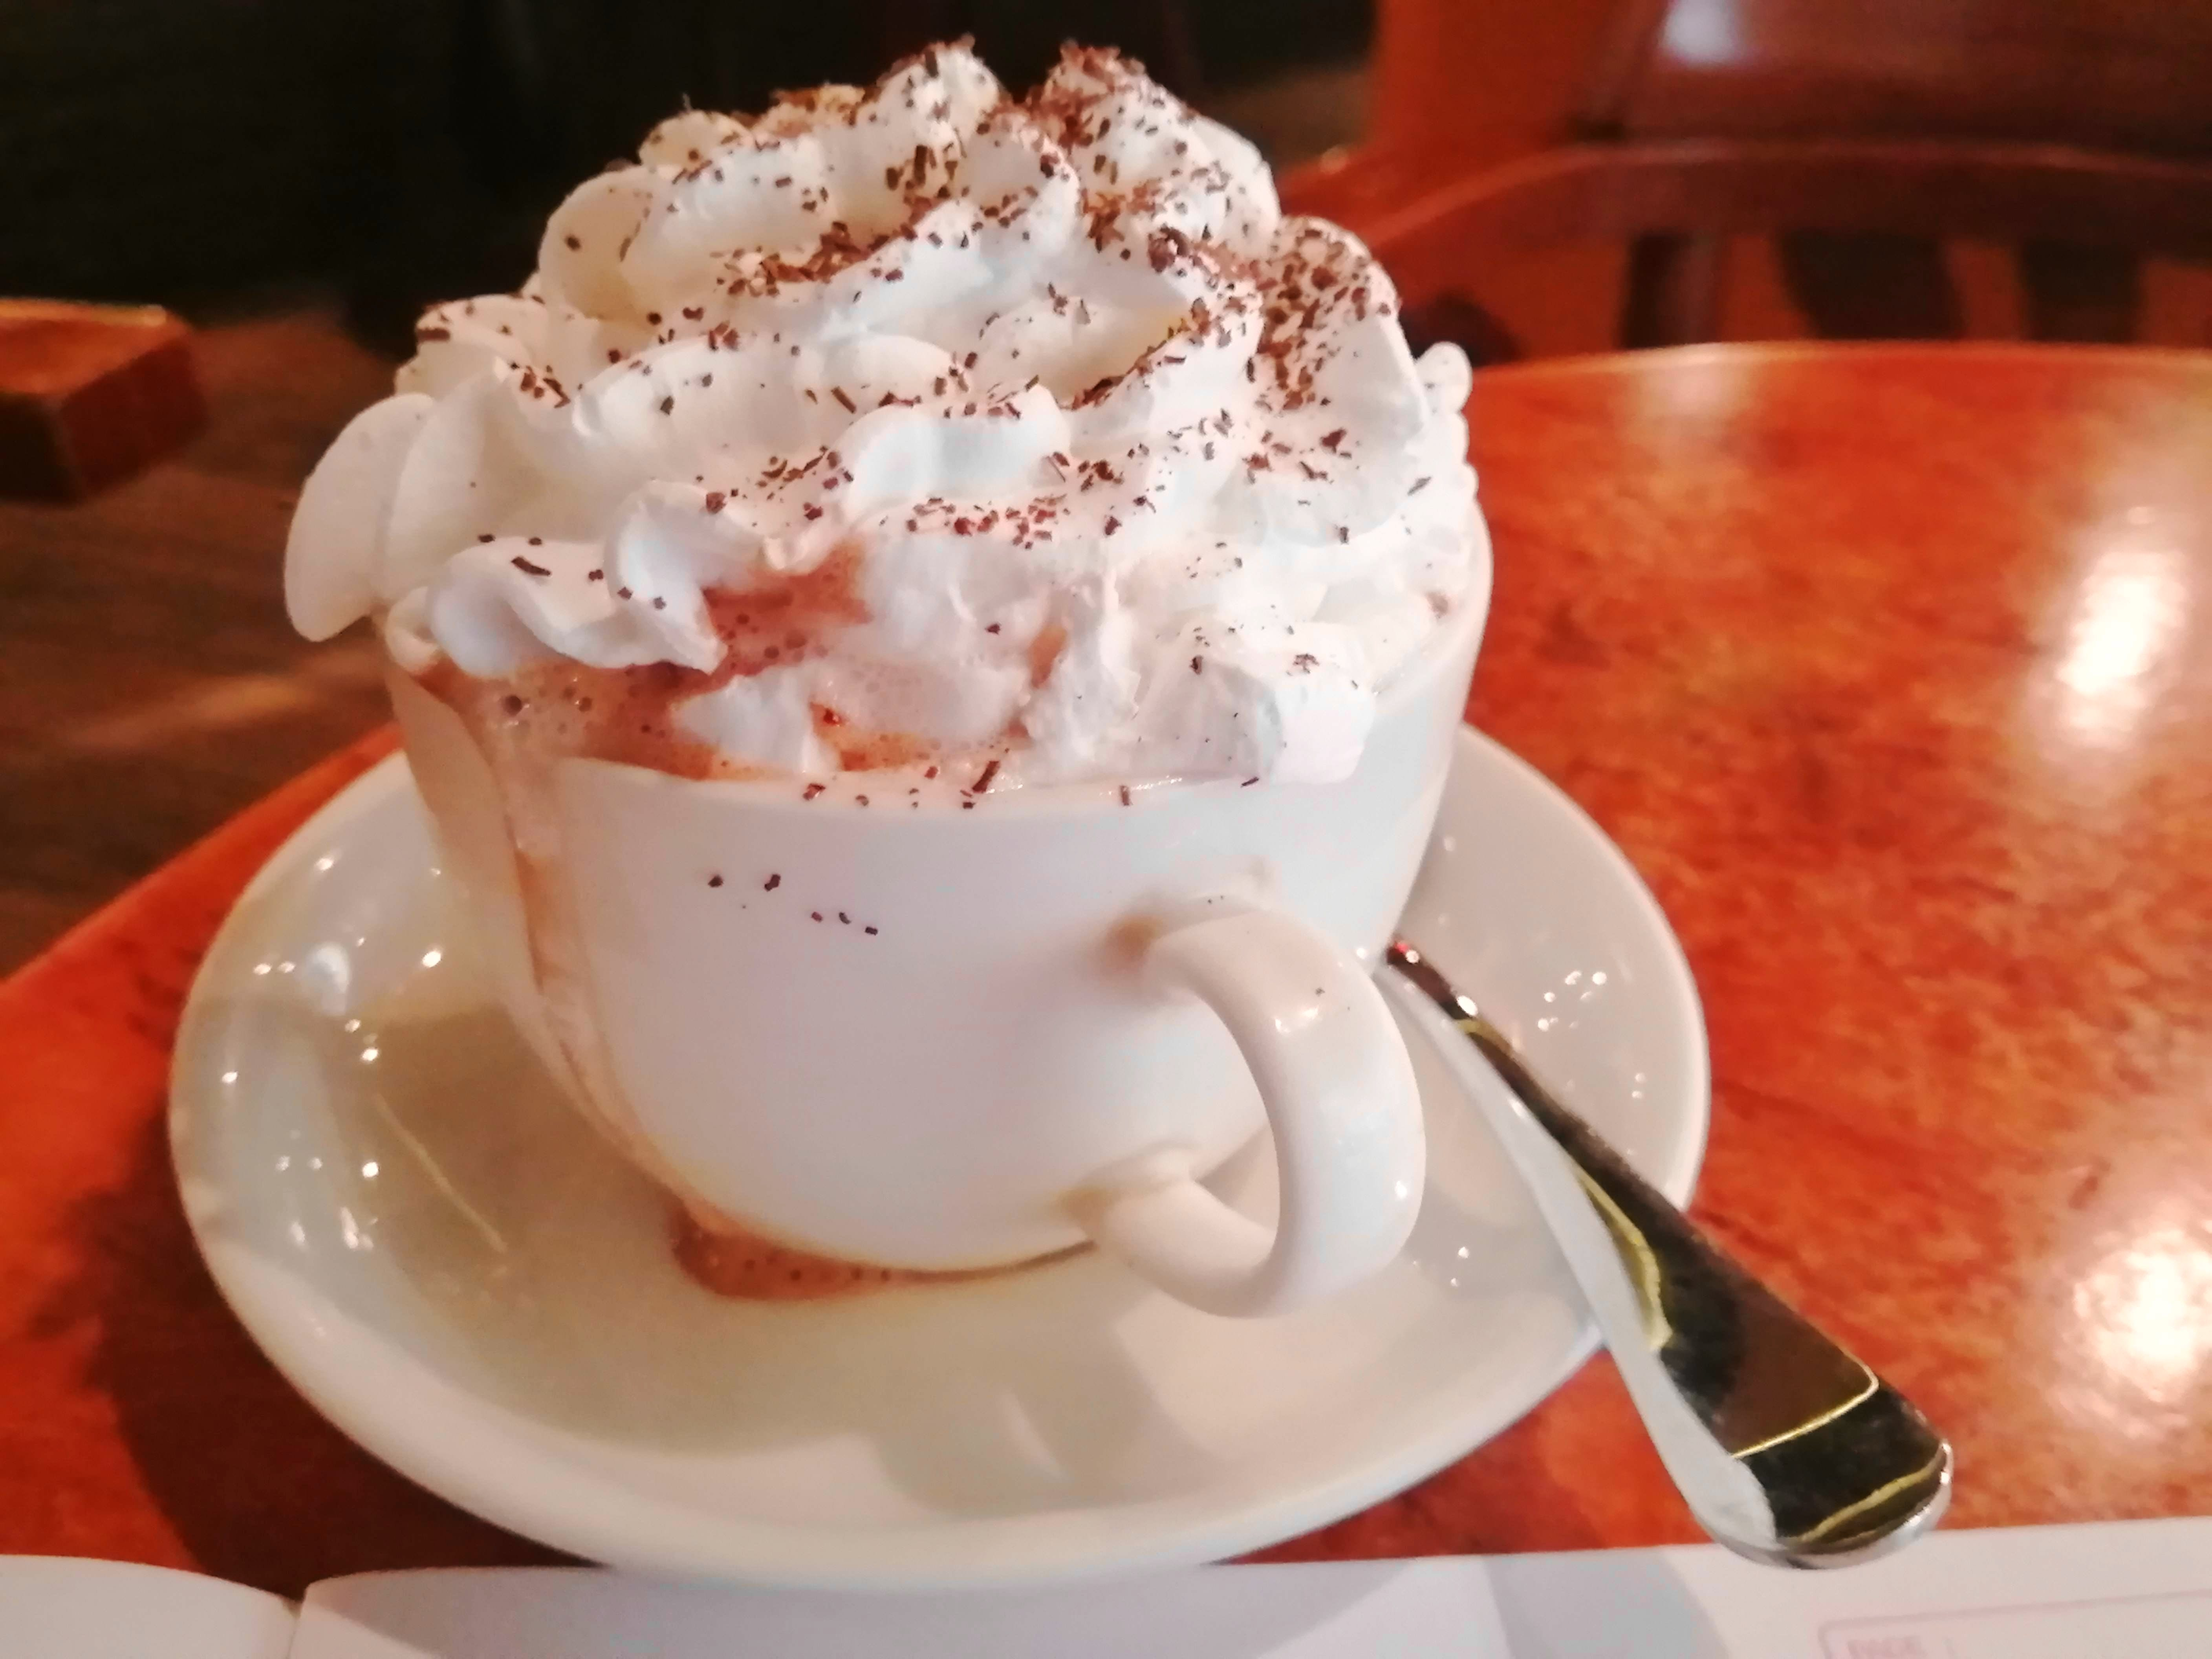 Whipped cream,Food,Cream,Dish,Cuisine,Drink,Non-alcoholic beverage,Espresso con panna,Hot chocolate,Sweetness